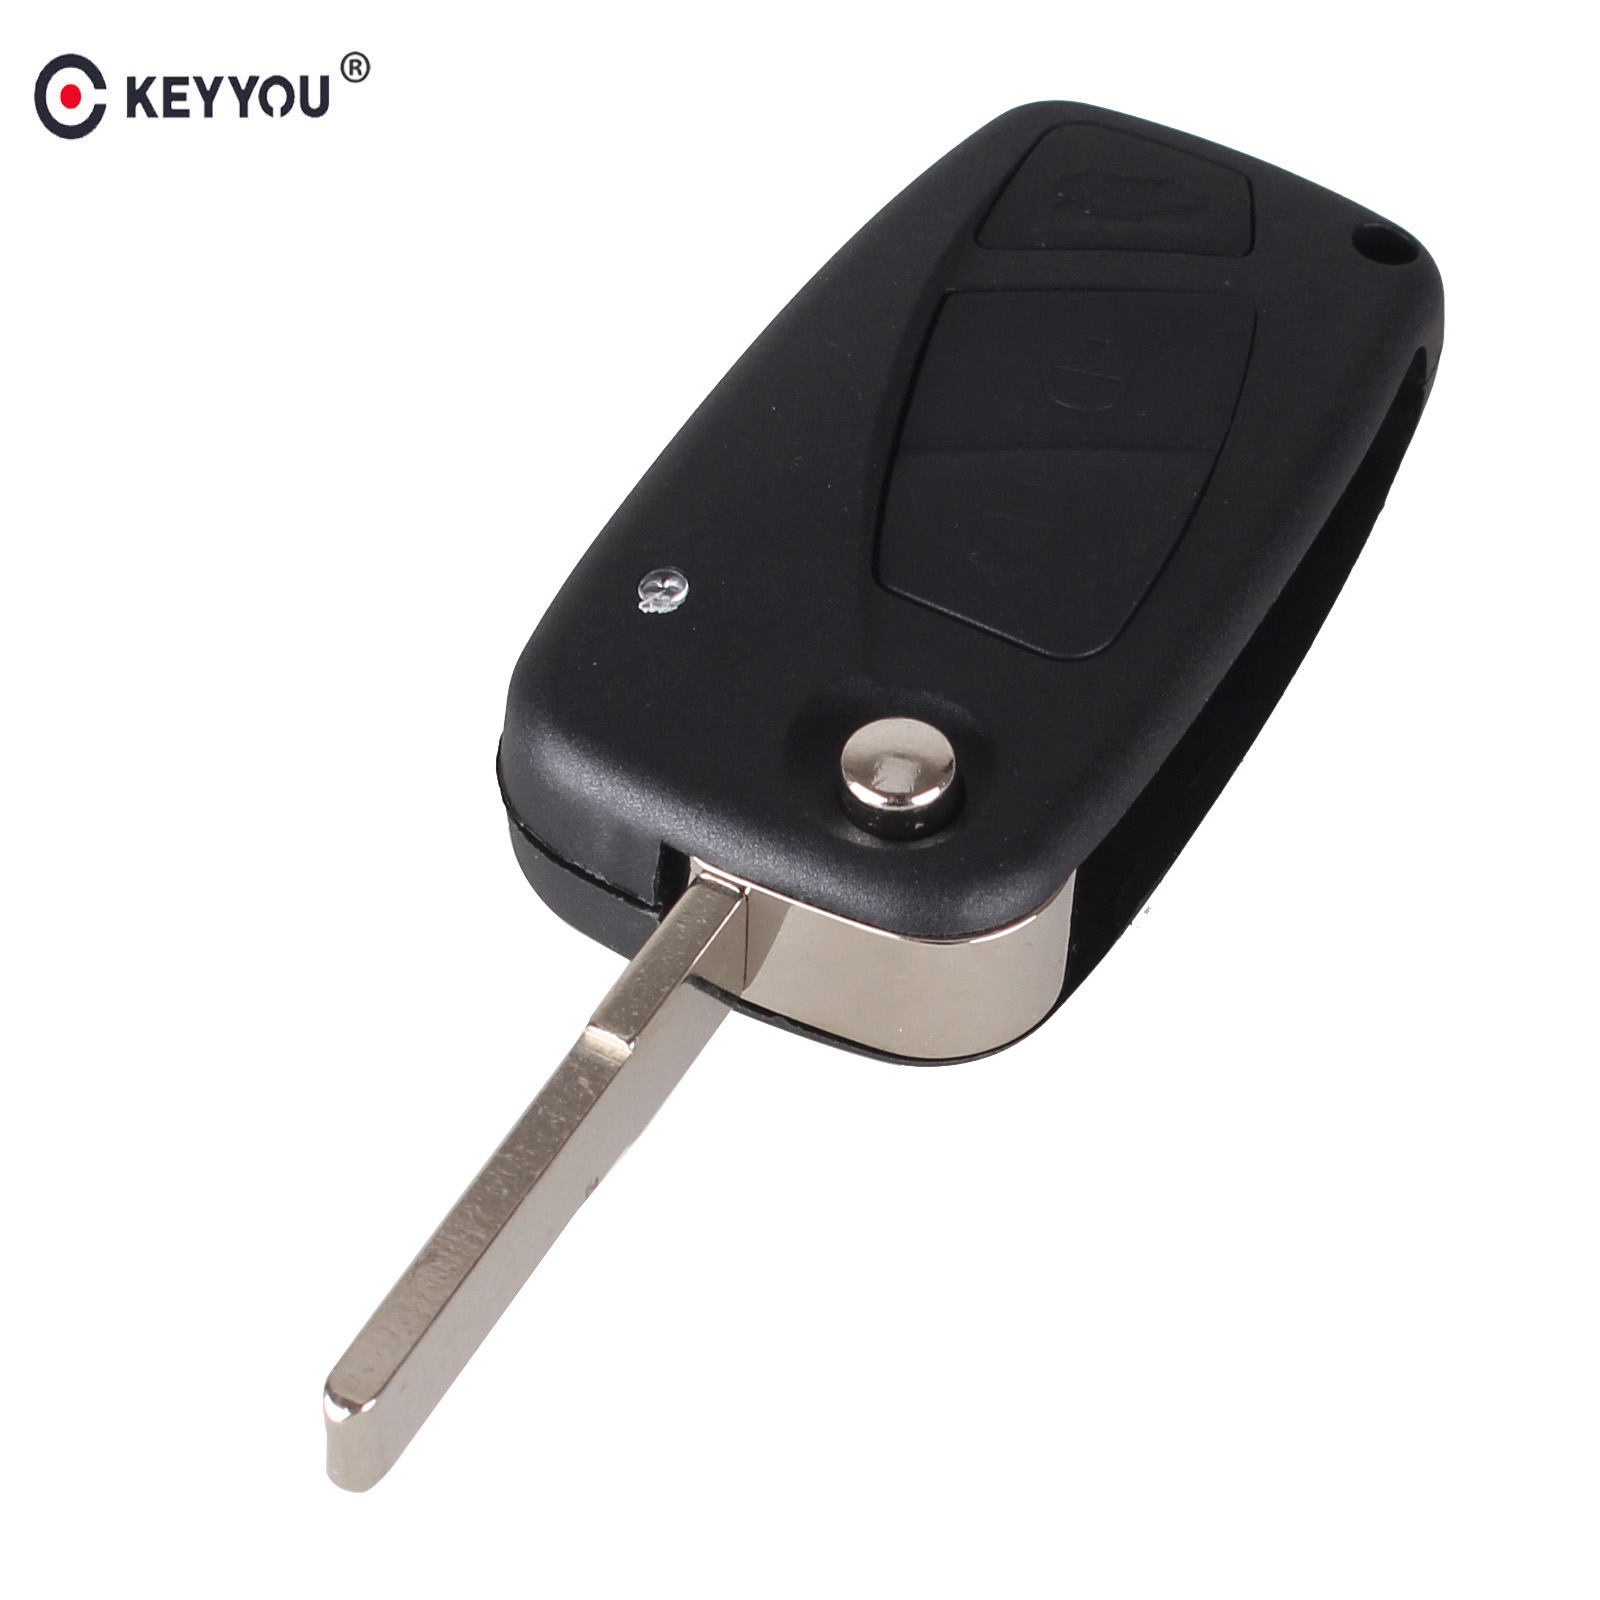 KEYYOU New 3 button 3 BTN For FIAT 3 button Punto Ducato Stilo Panda Flip Folding Remote Car Key Shell Case Cover SIP22 blade free shipping flip remote key shell colorful replacement cover shell for fiat 500 panda punto bravo case